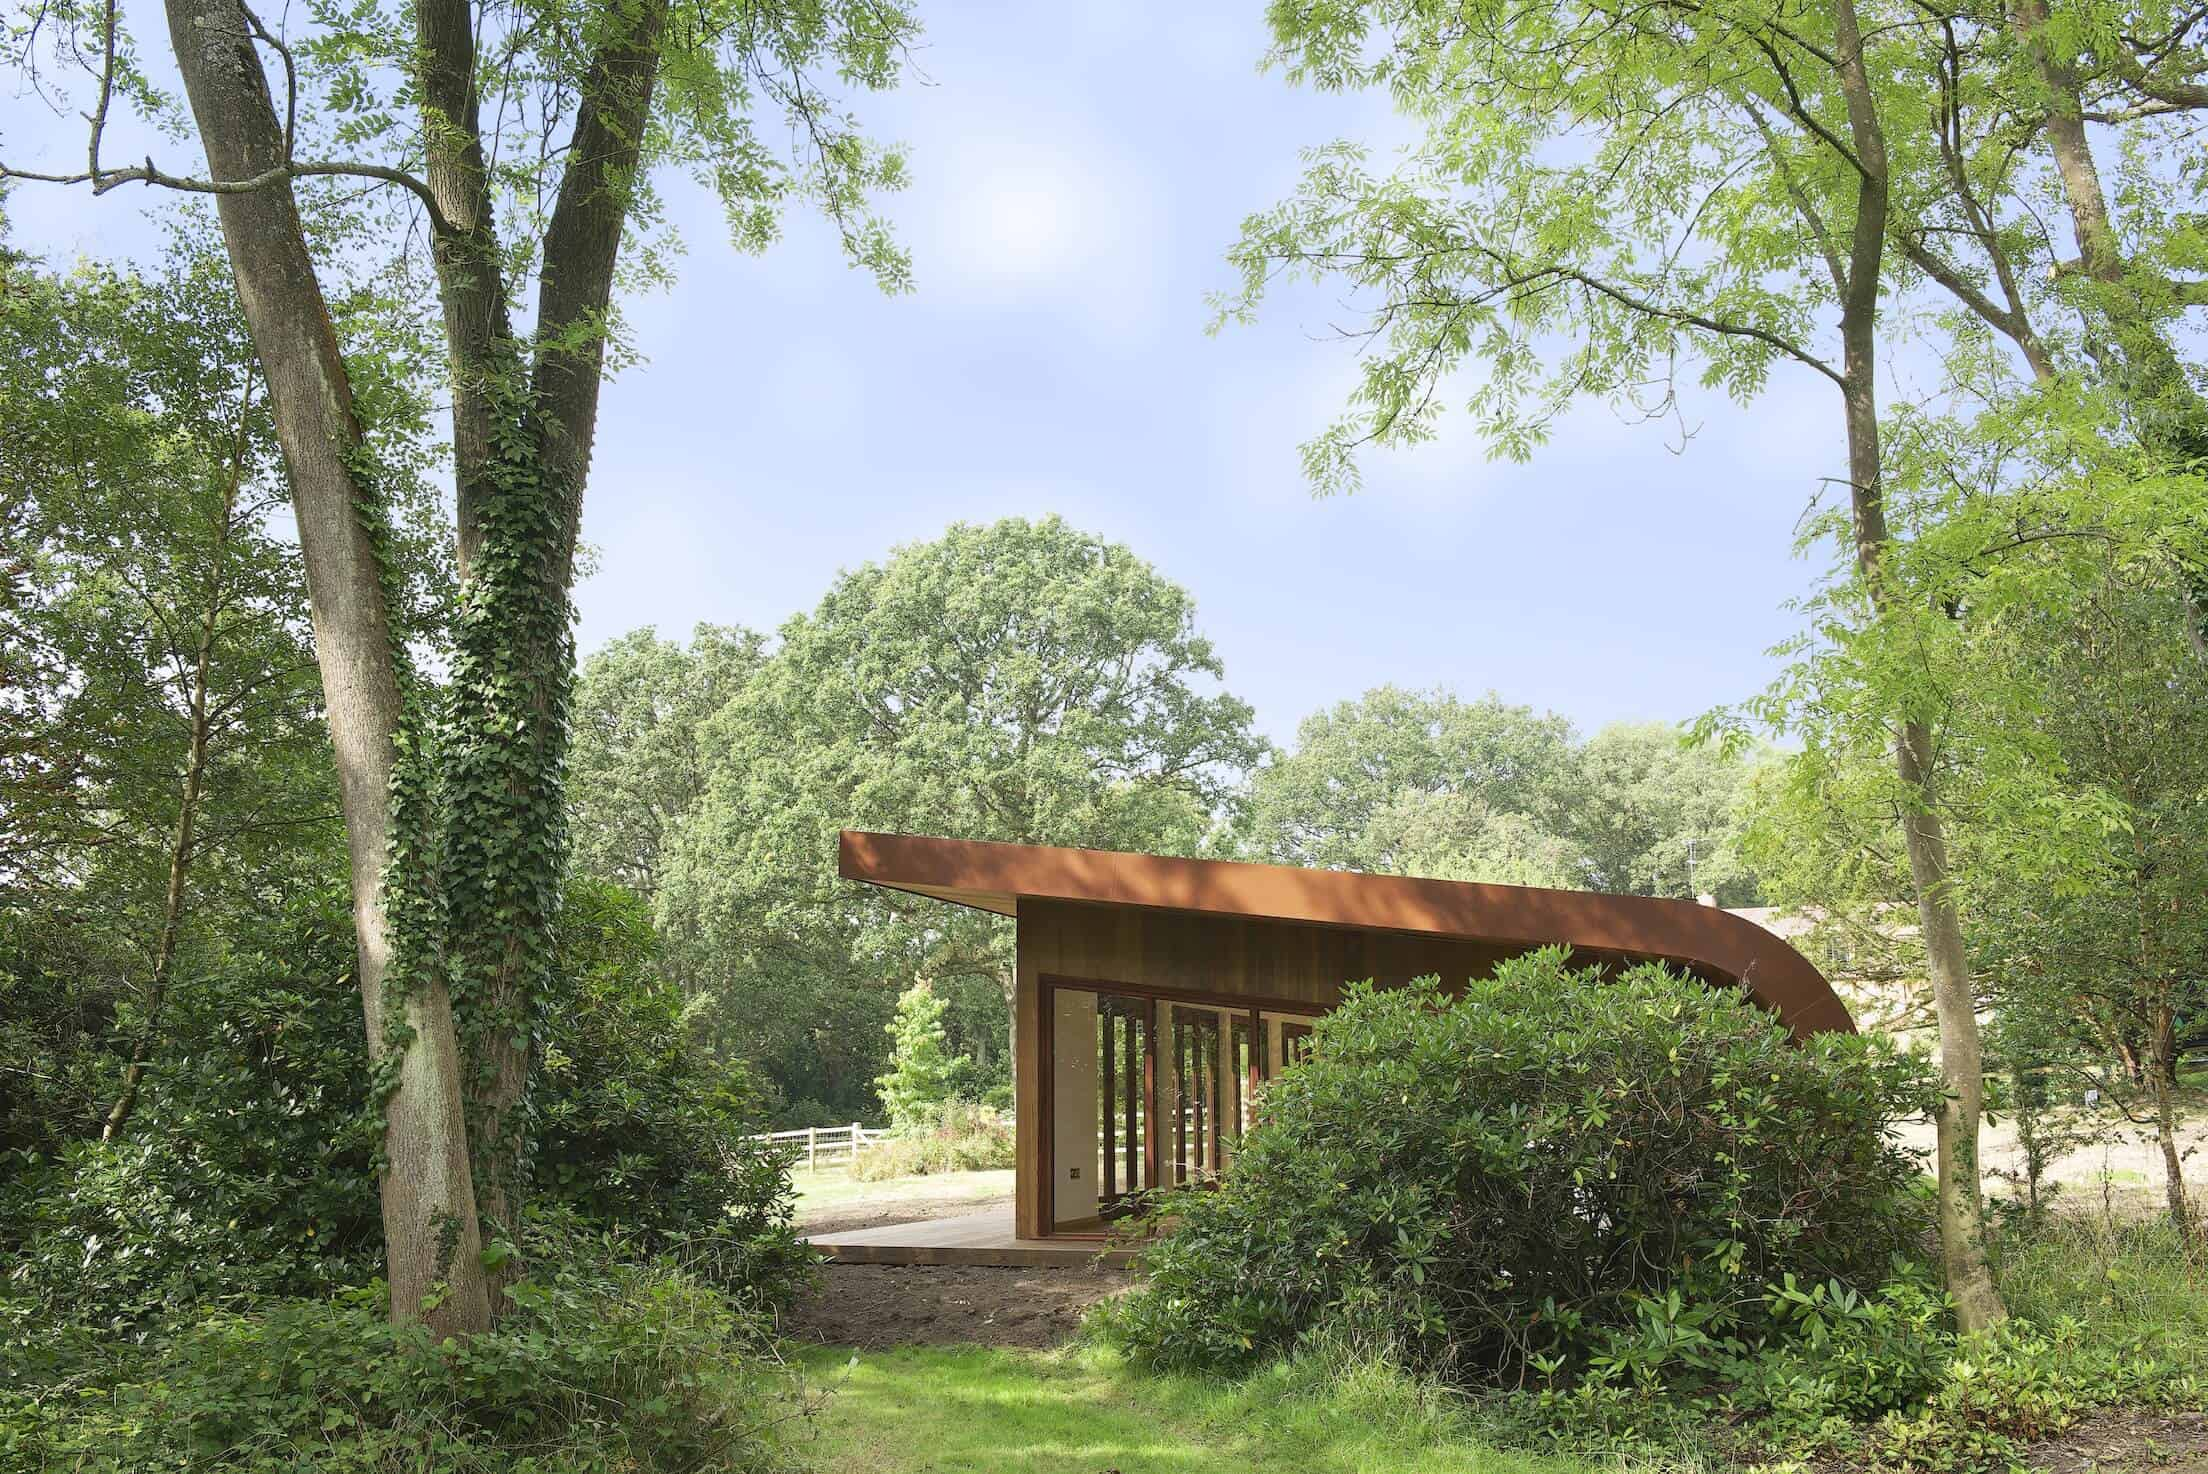 Taking in a wide view of the surrounding forest, we see how the studio meshes perfectly in its natural environment.